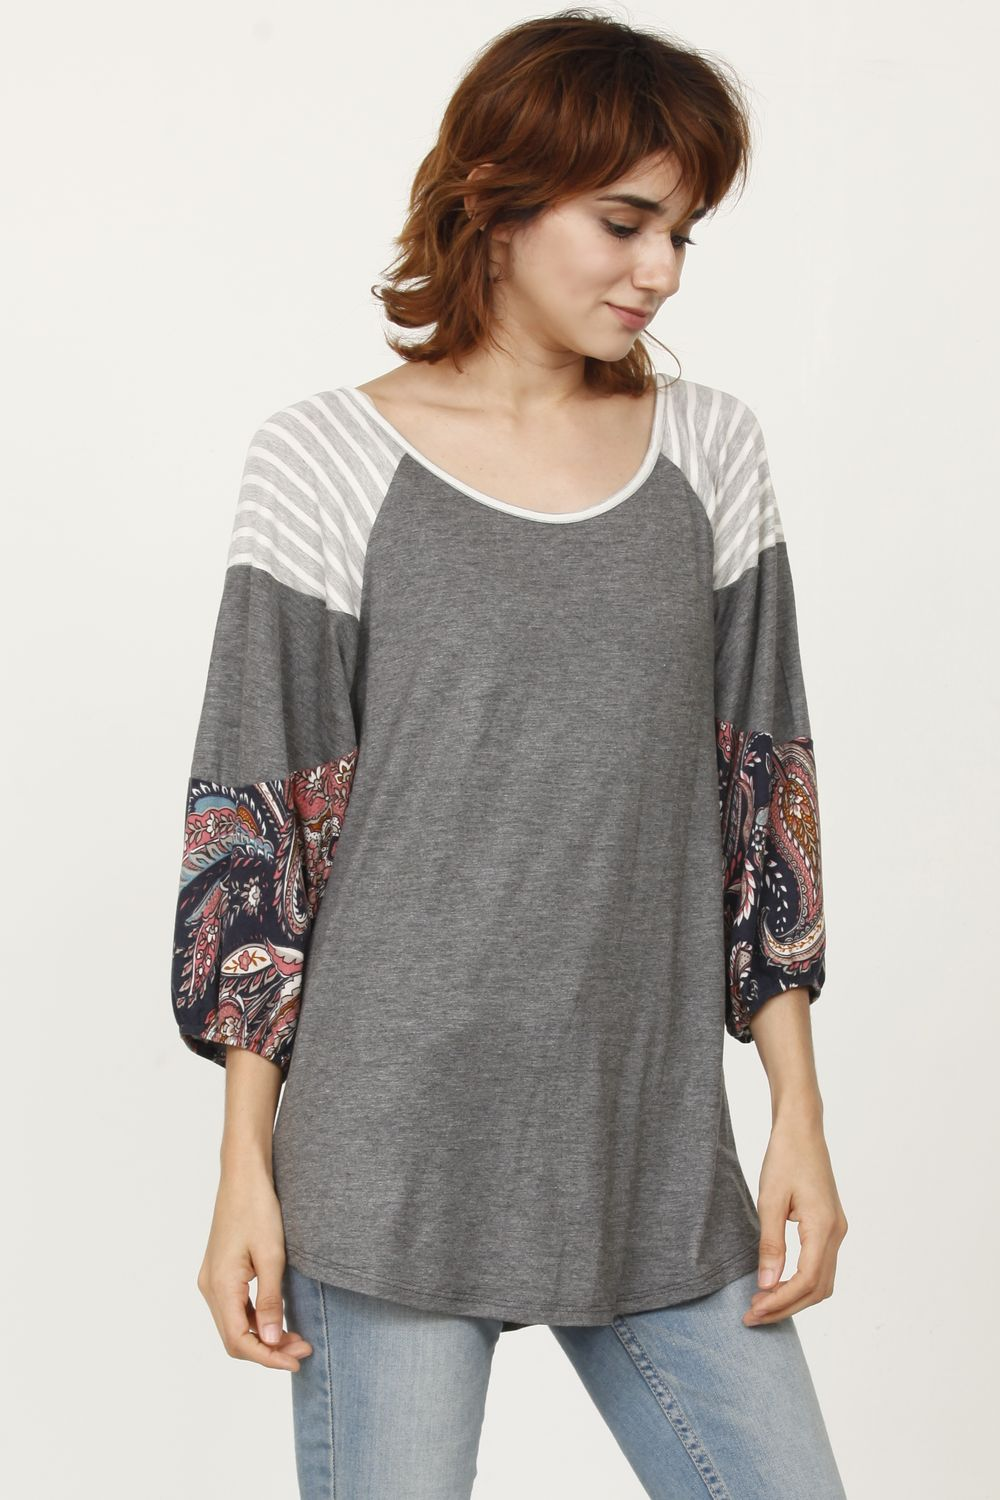 Charcoal Paisley 3/4 Bishop Sleeve Raglan Top